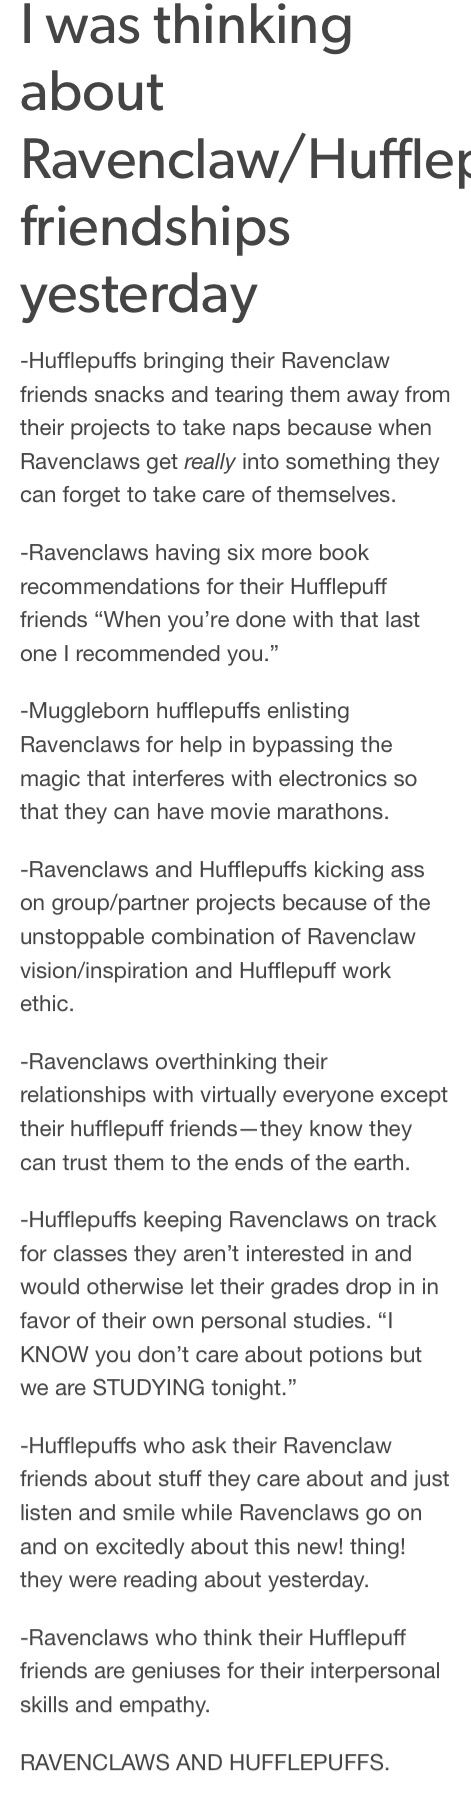 Hufflepuff and Ravenclaw friendship. Dunno why I never thought of this before but it's PERFECT!!!